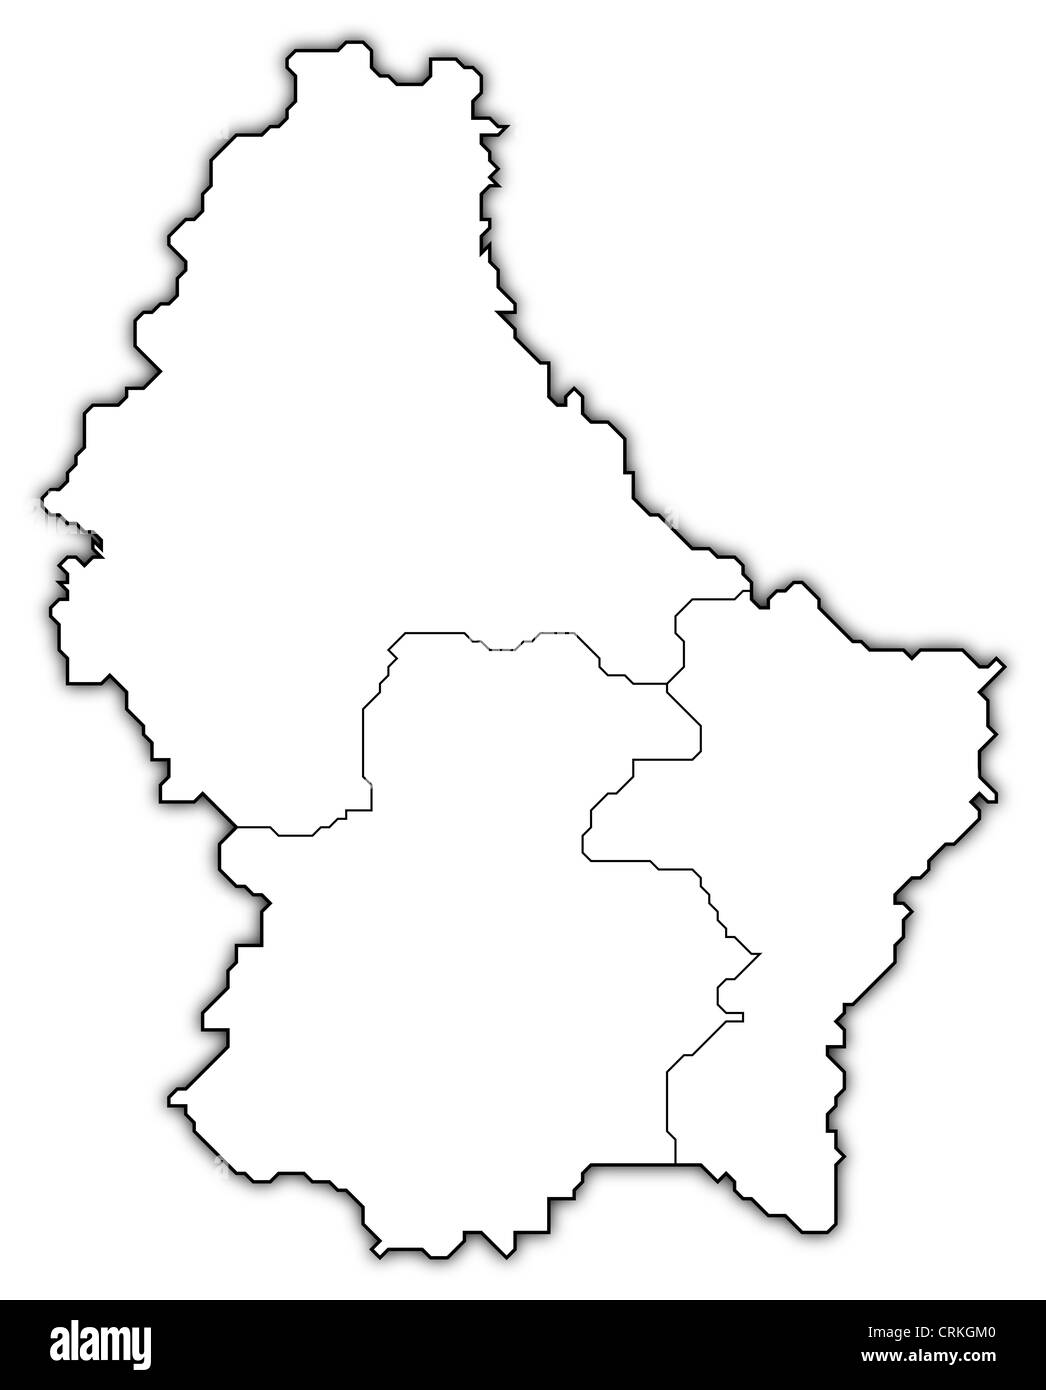 Political map of Luxembourg with the several Districts. - Stock Image